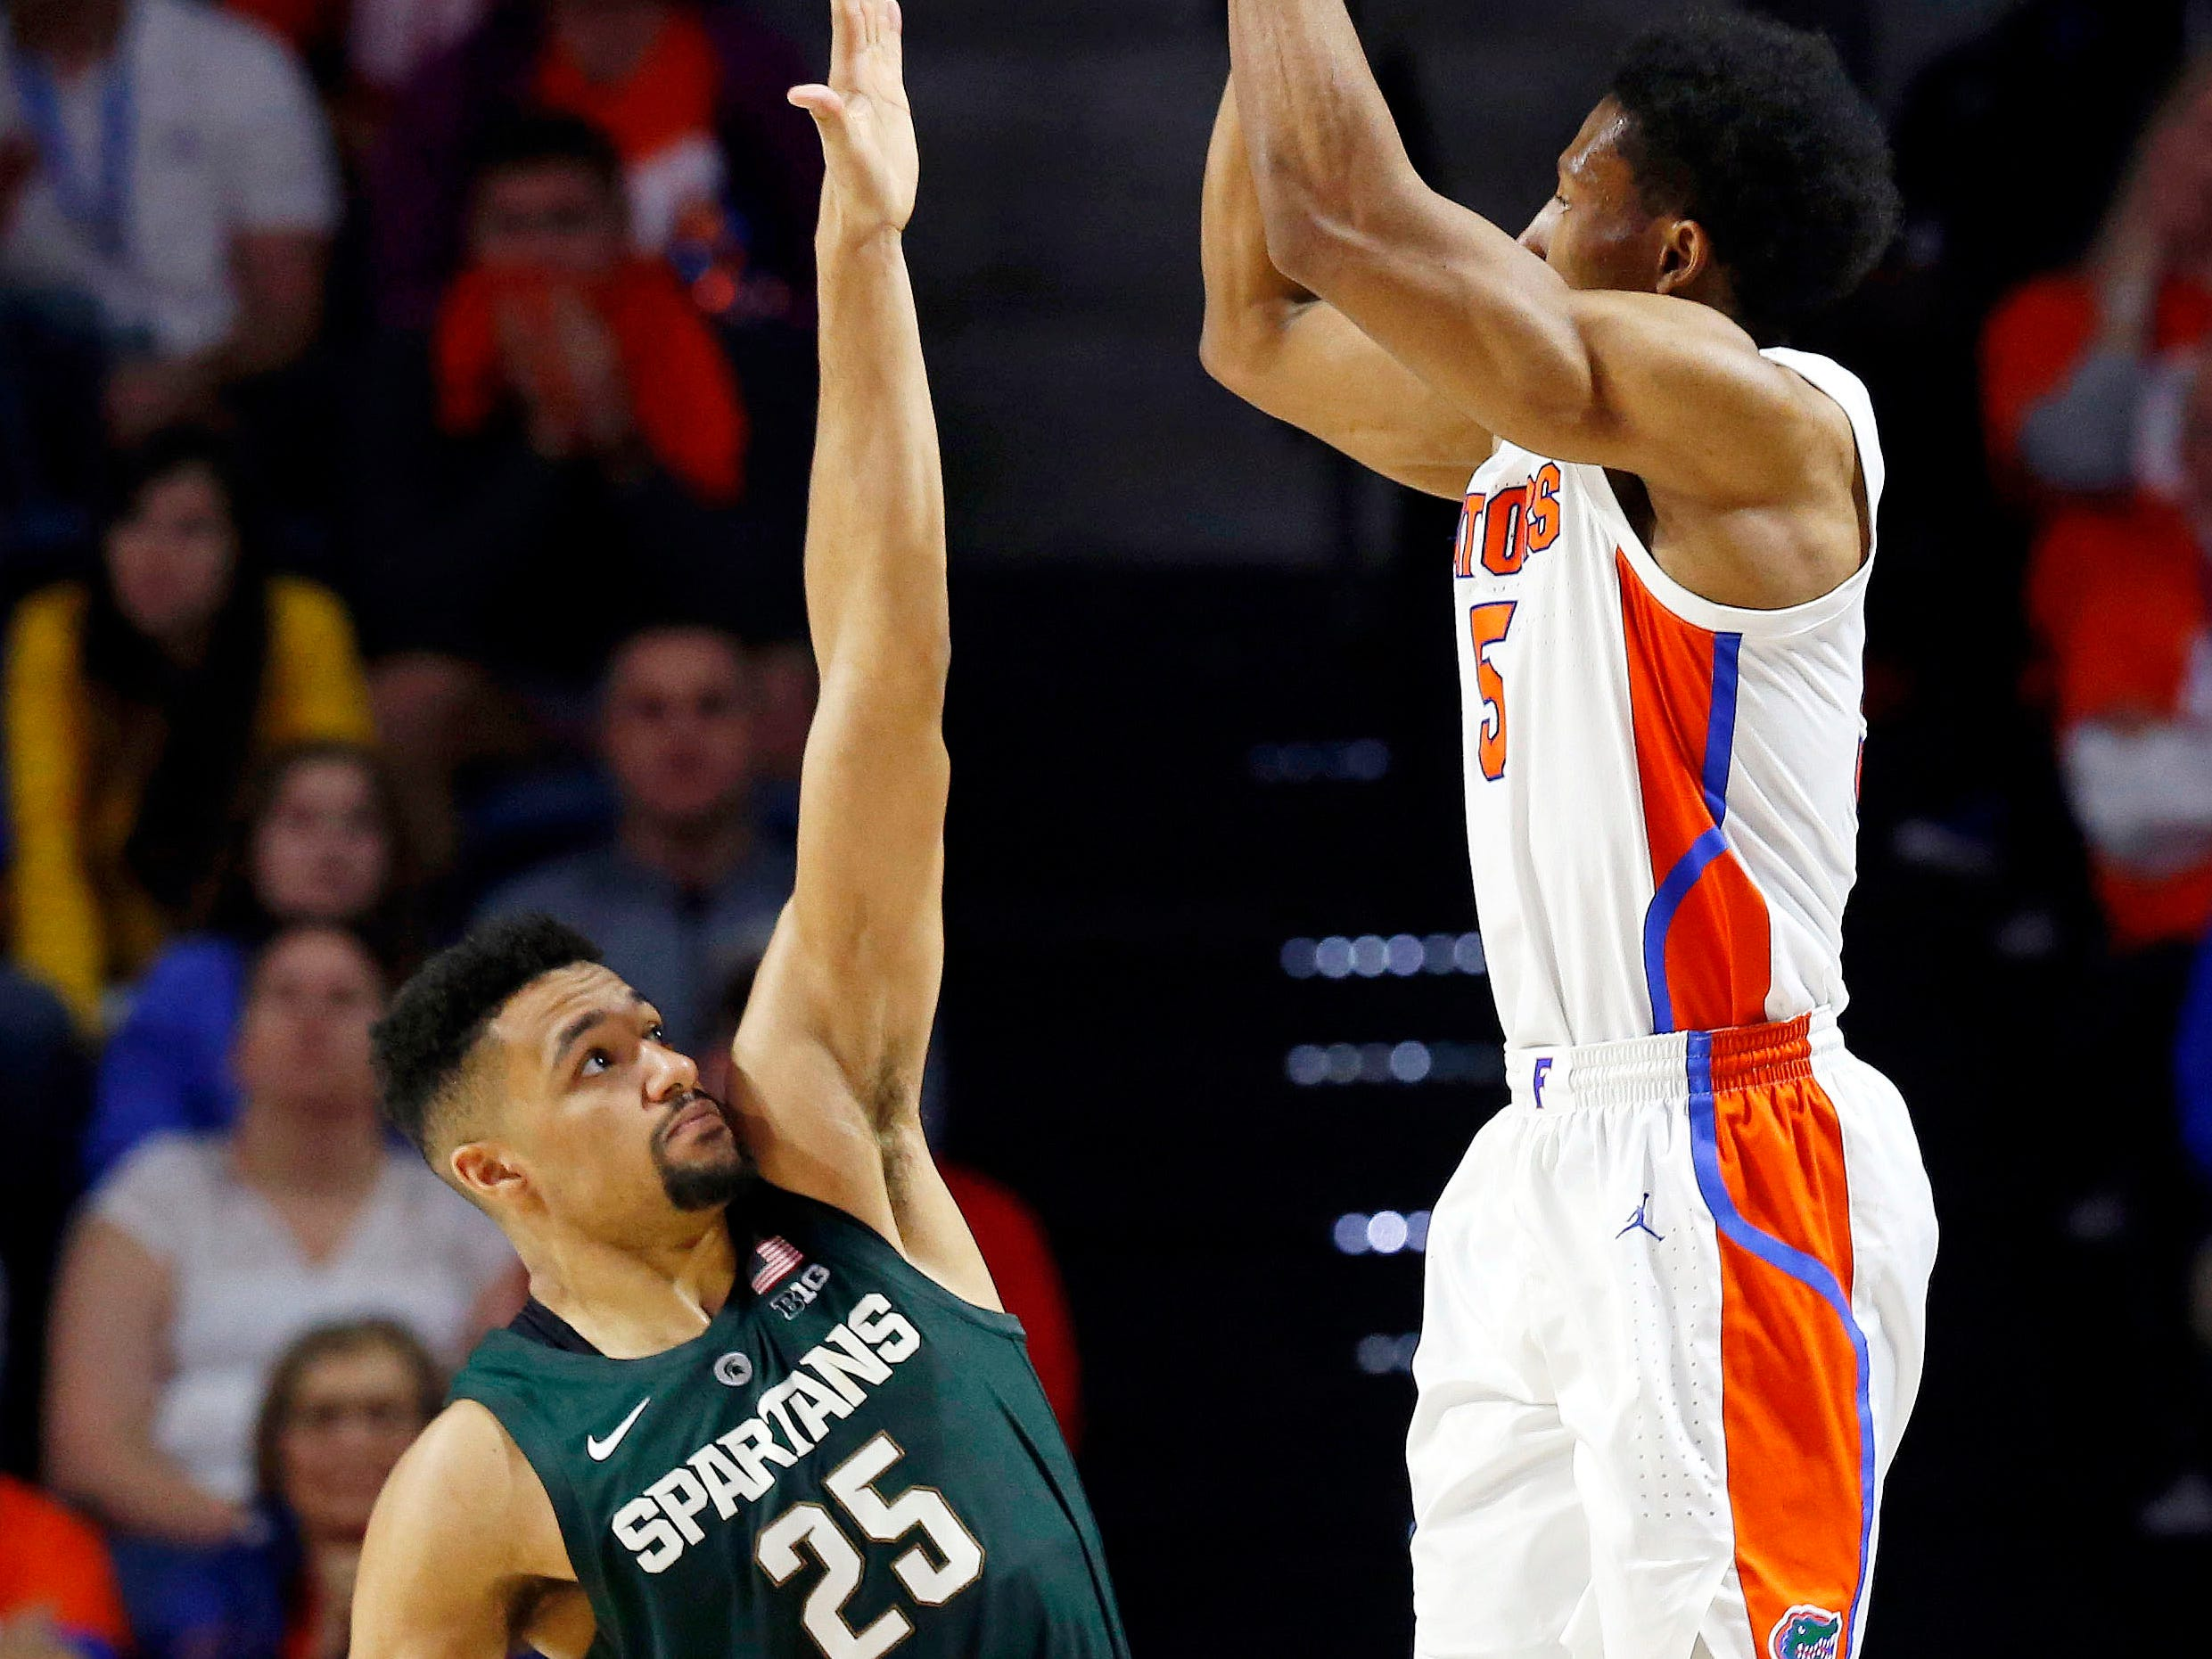 Florida Gators guard KeVaughn Allen (5) shoots over Michigan State Spartans forward Kenny Goins (25) during the second half at Exactech Arena.